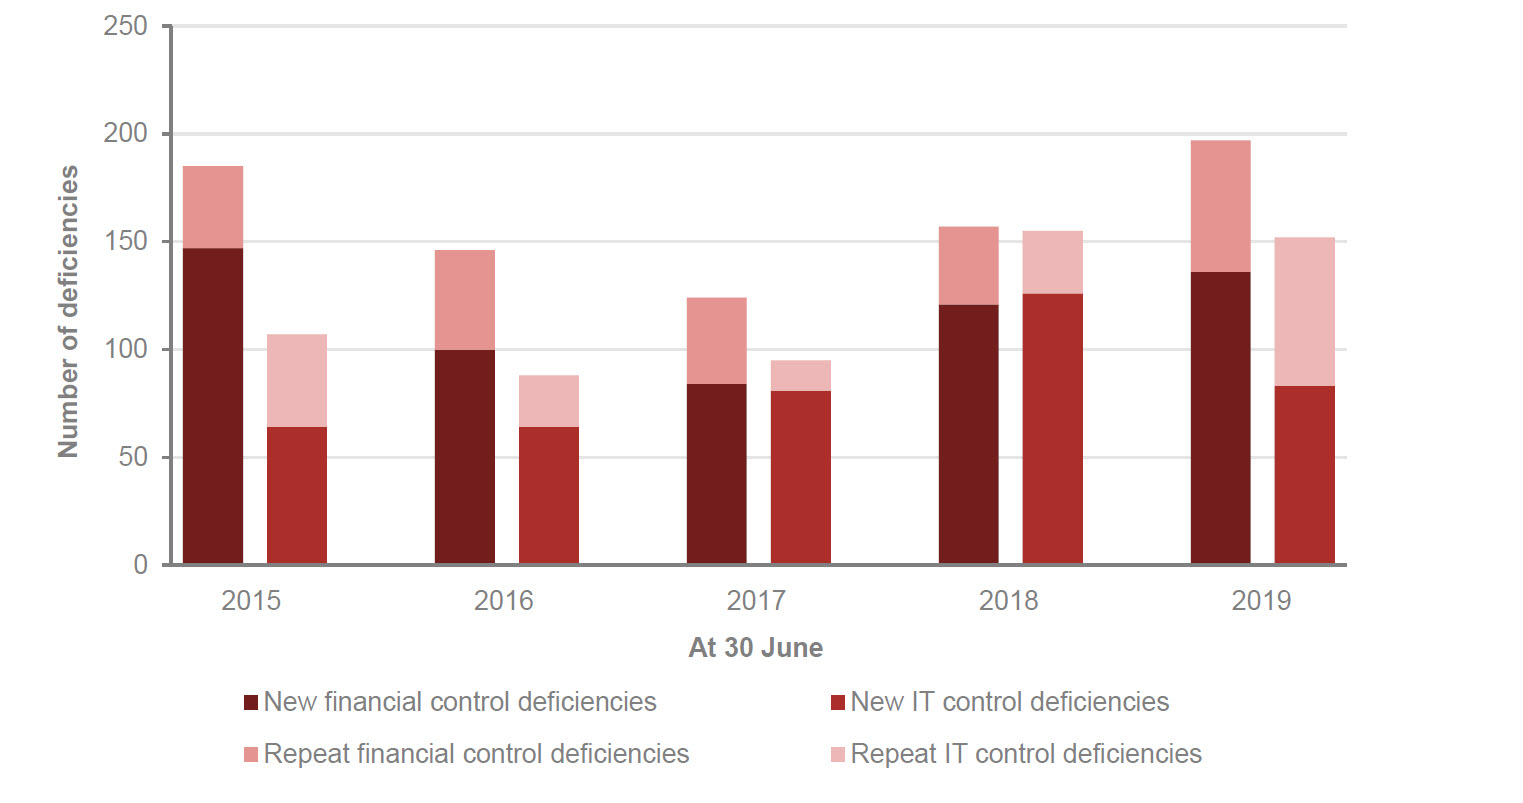 This graph shows internal control deficiencies from 2015 to 2019